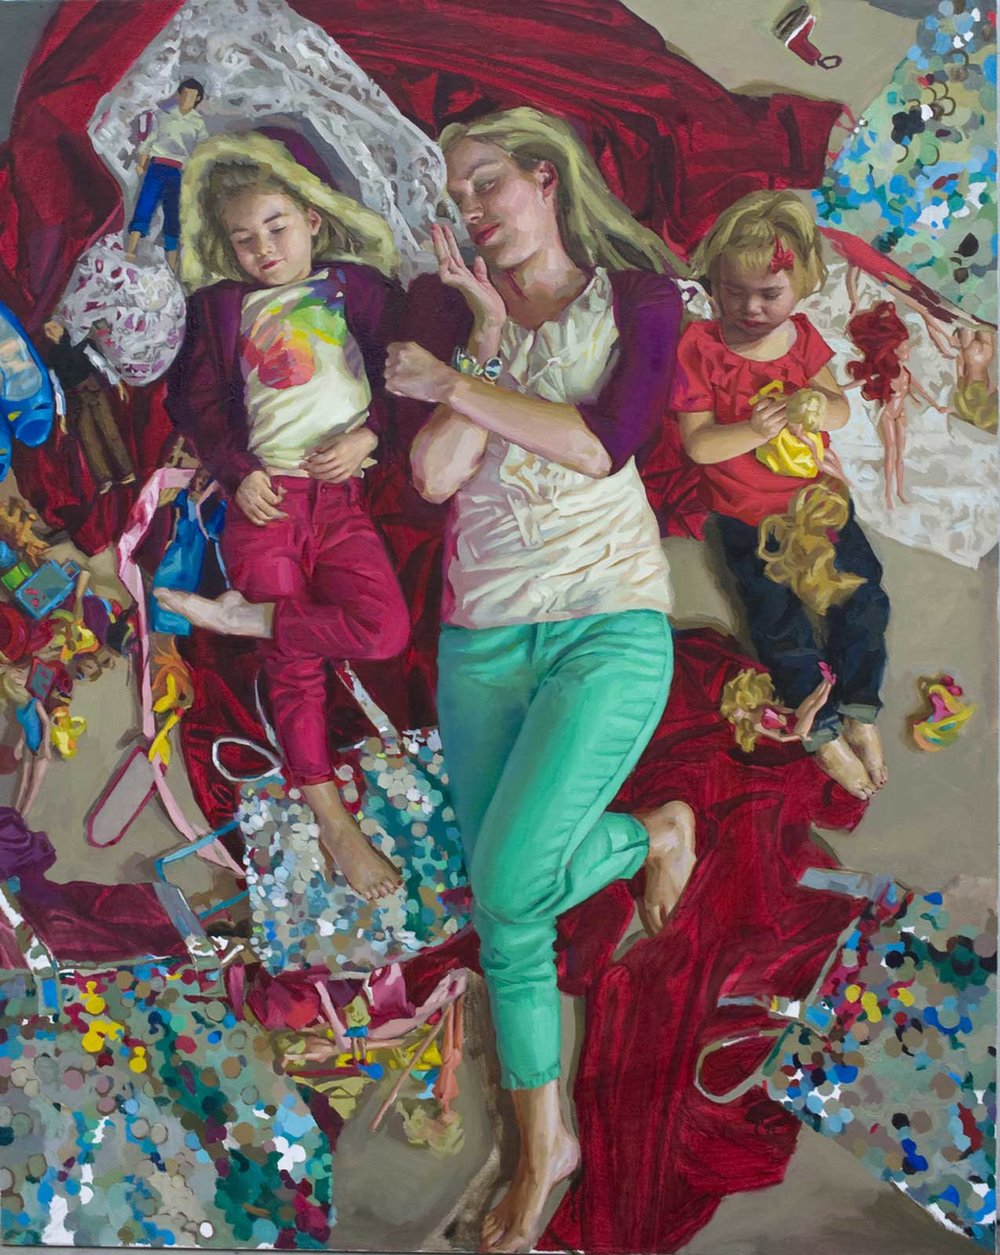 Mary Sauer (b. 1986) Release (2015) Oil on canvas. 90 x 60 in.